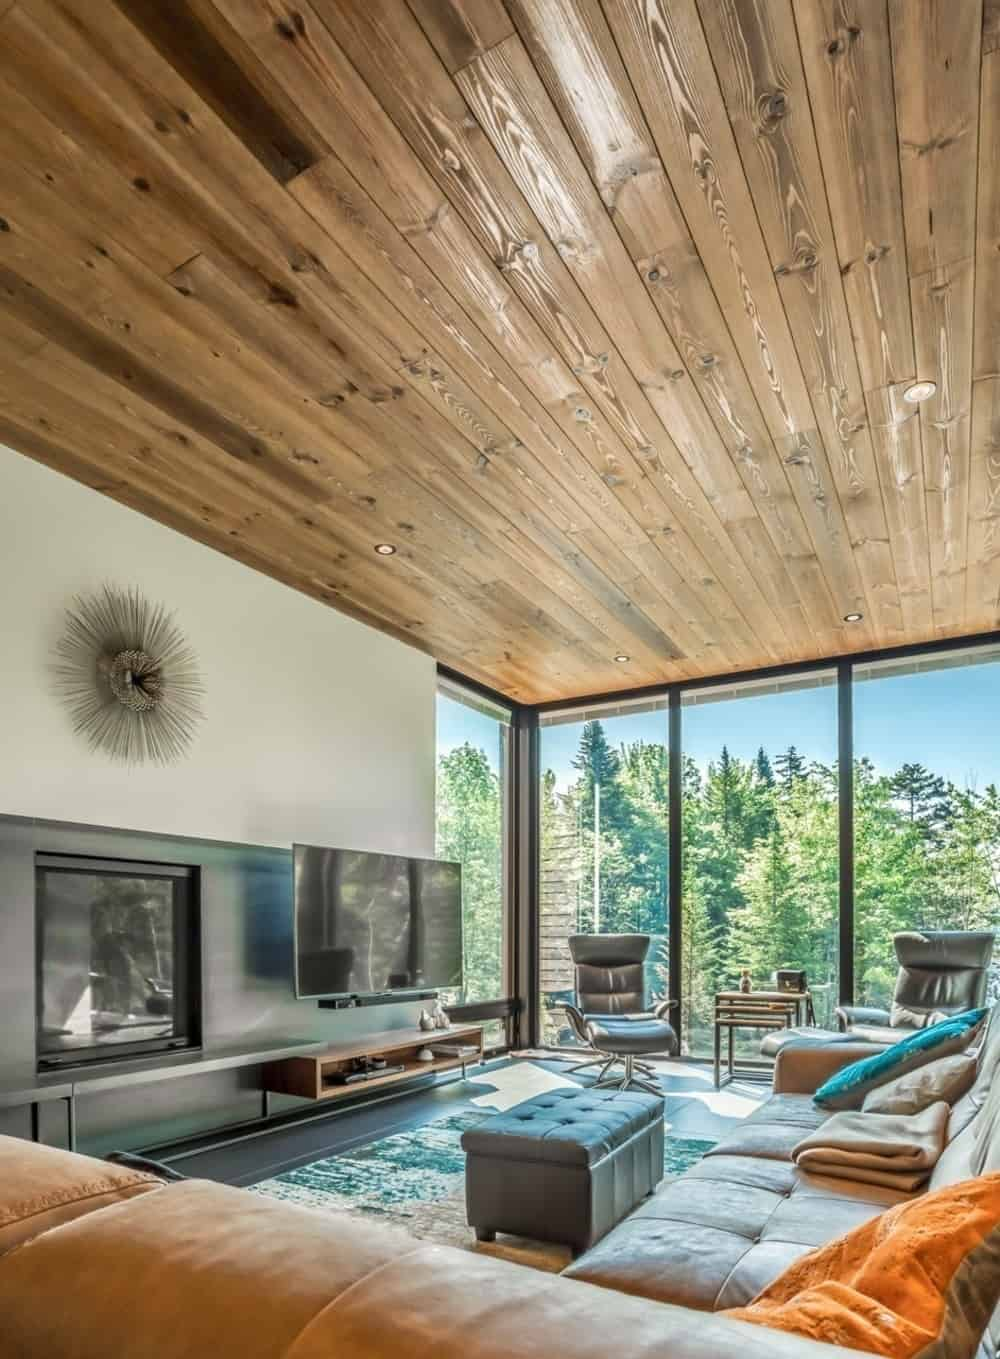 Another look at the living room showcasing the perfect blend of the sofa set and hardwood ceiling. Photo Credit: Dominic Boudreau